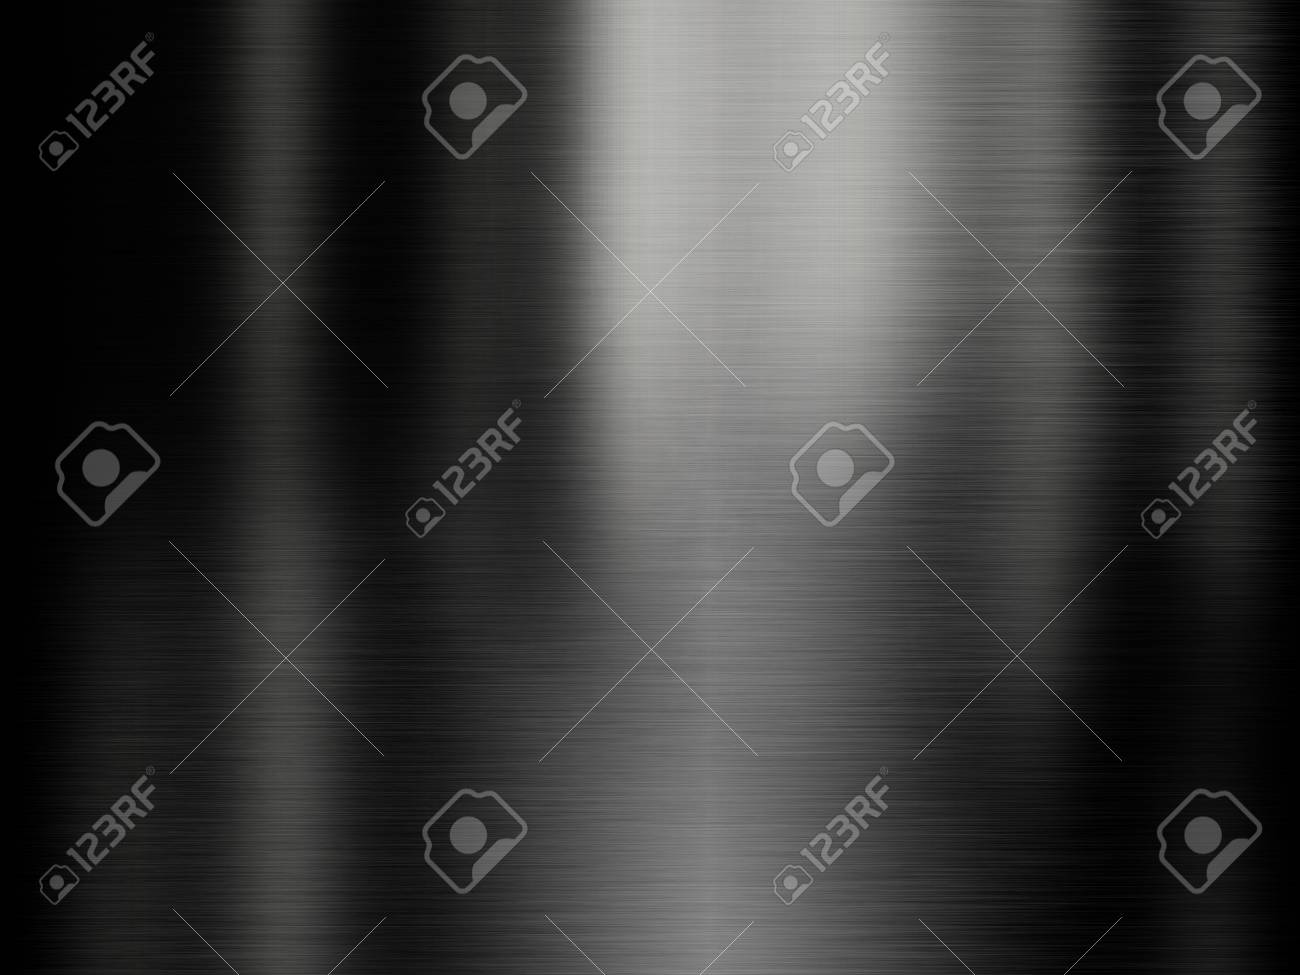 Stainless steel texture or metal texture background Banque d'images - 75076728